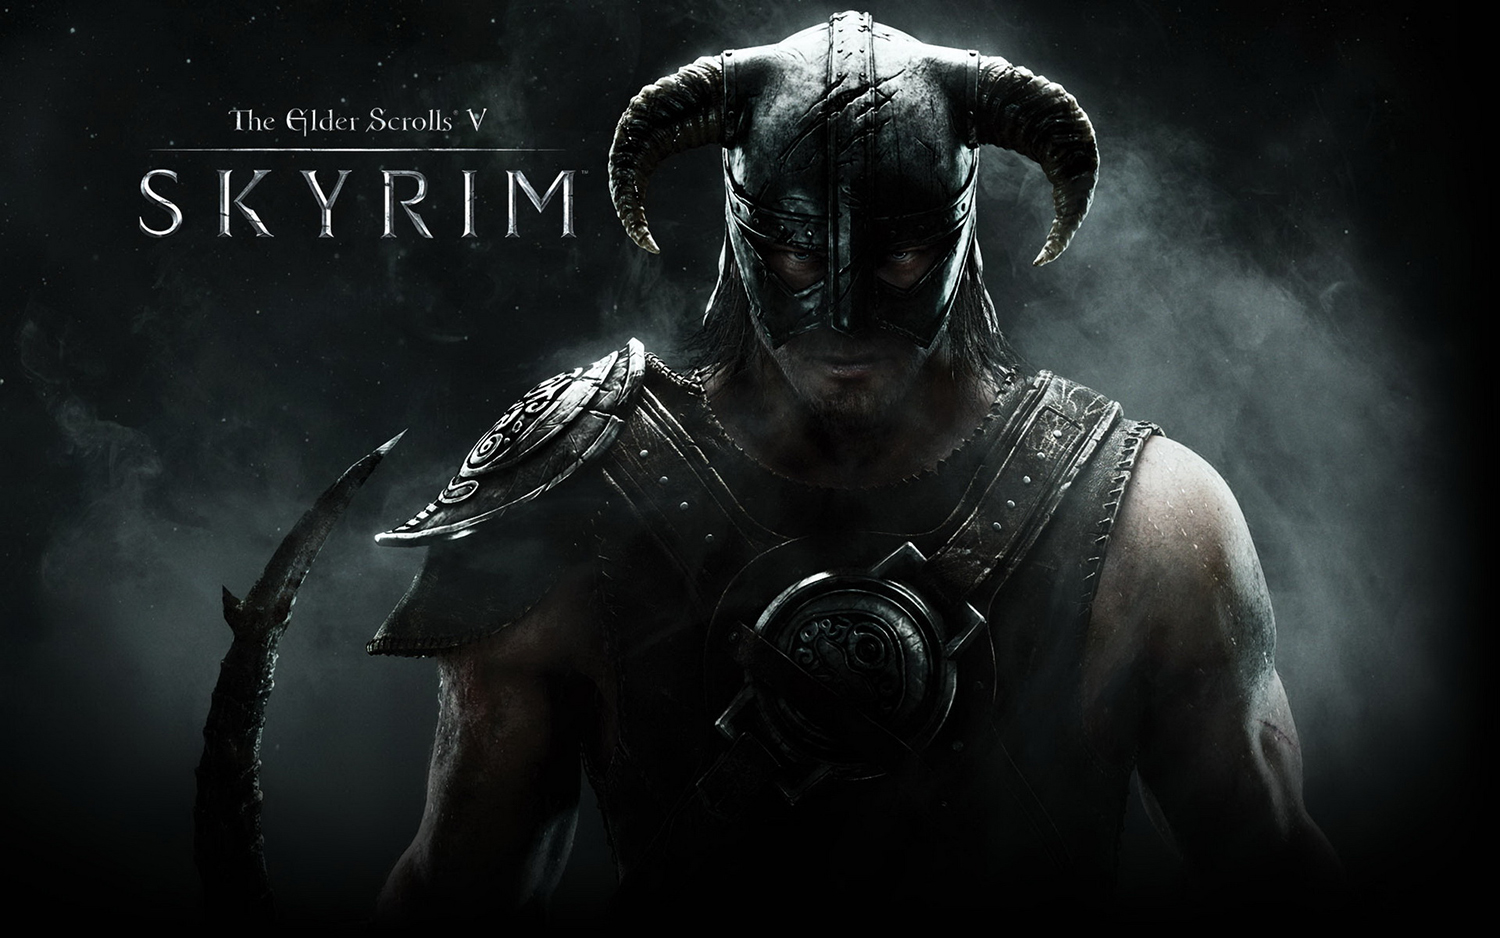 The Elder Scrolls V Skyrim – 01